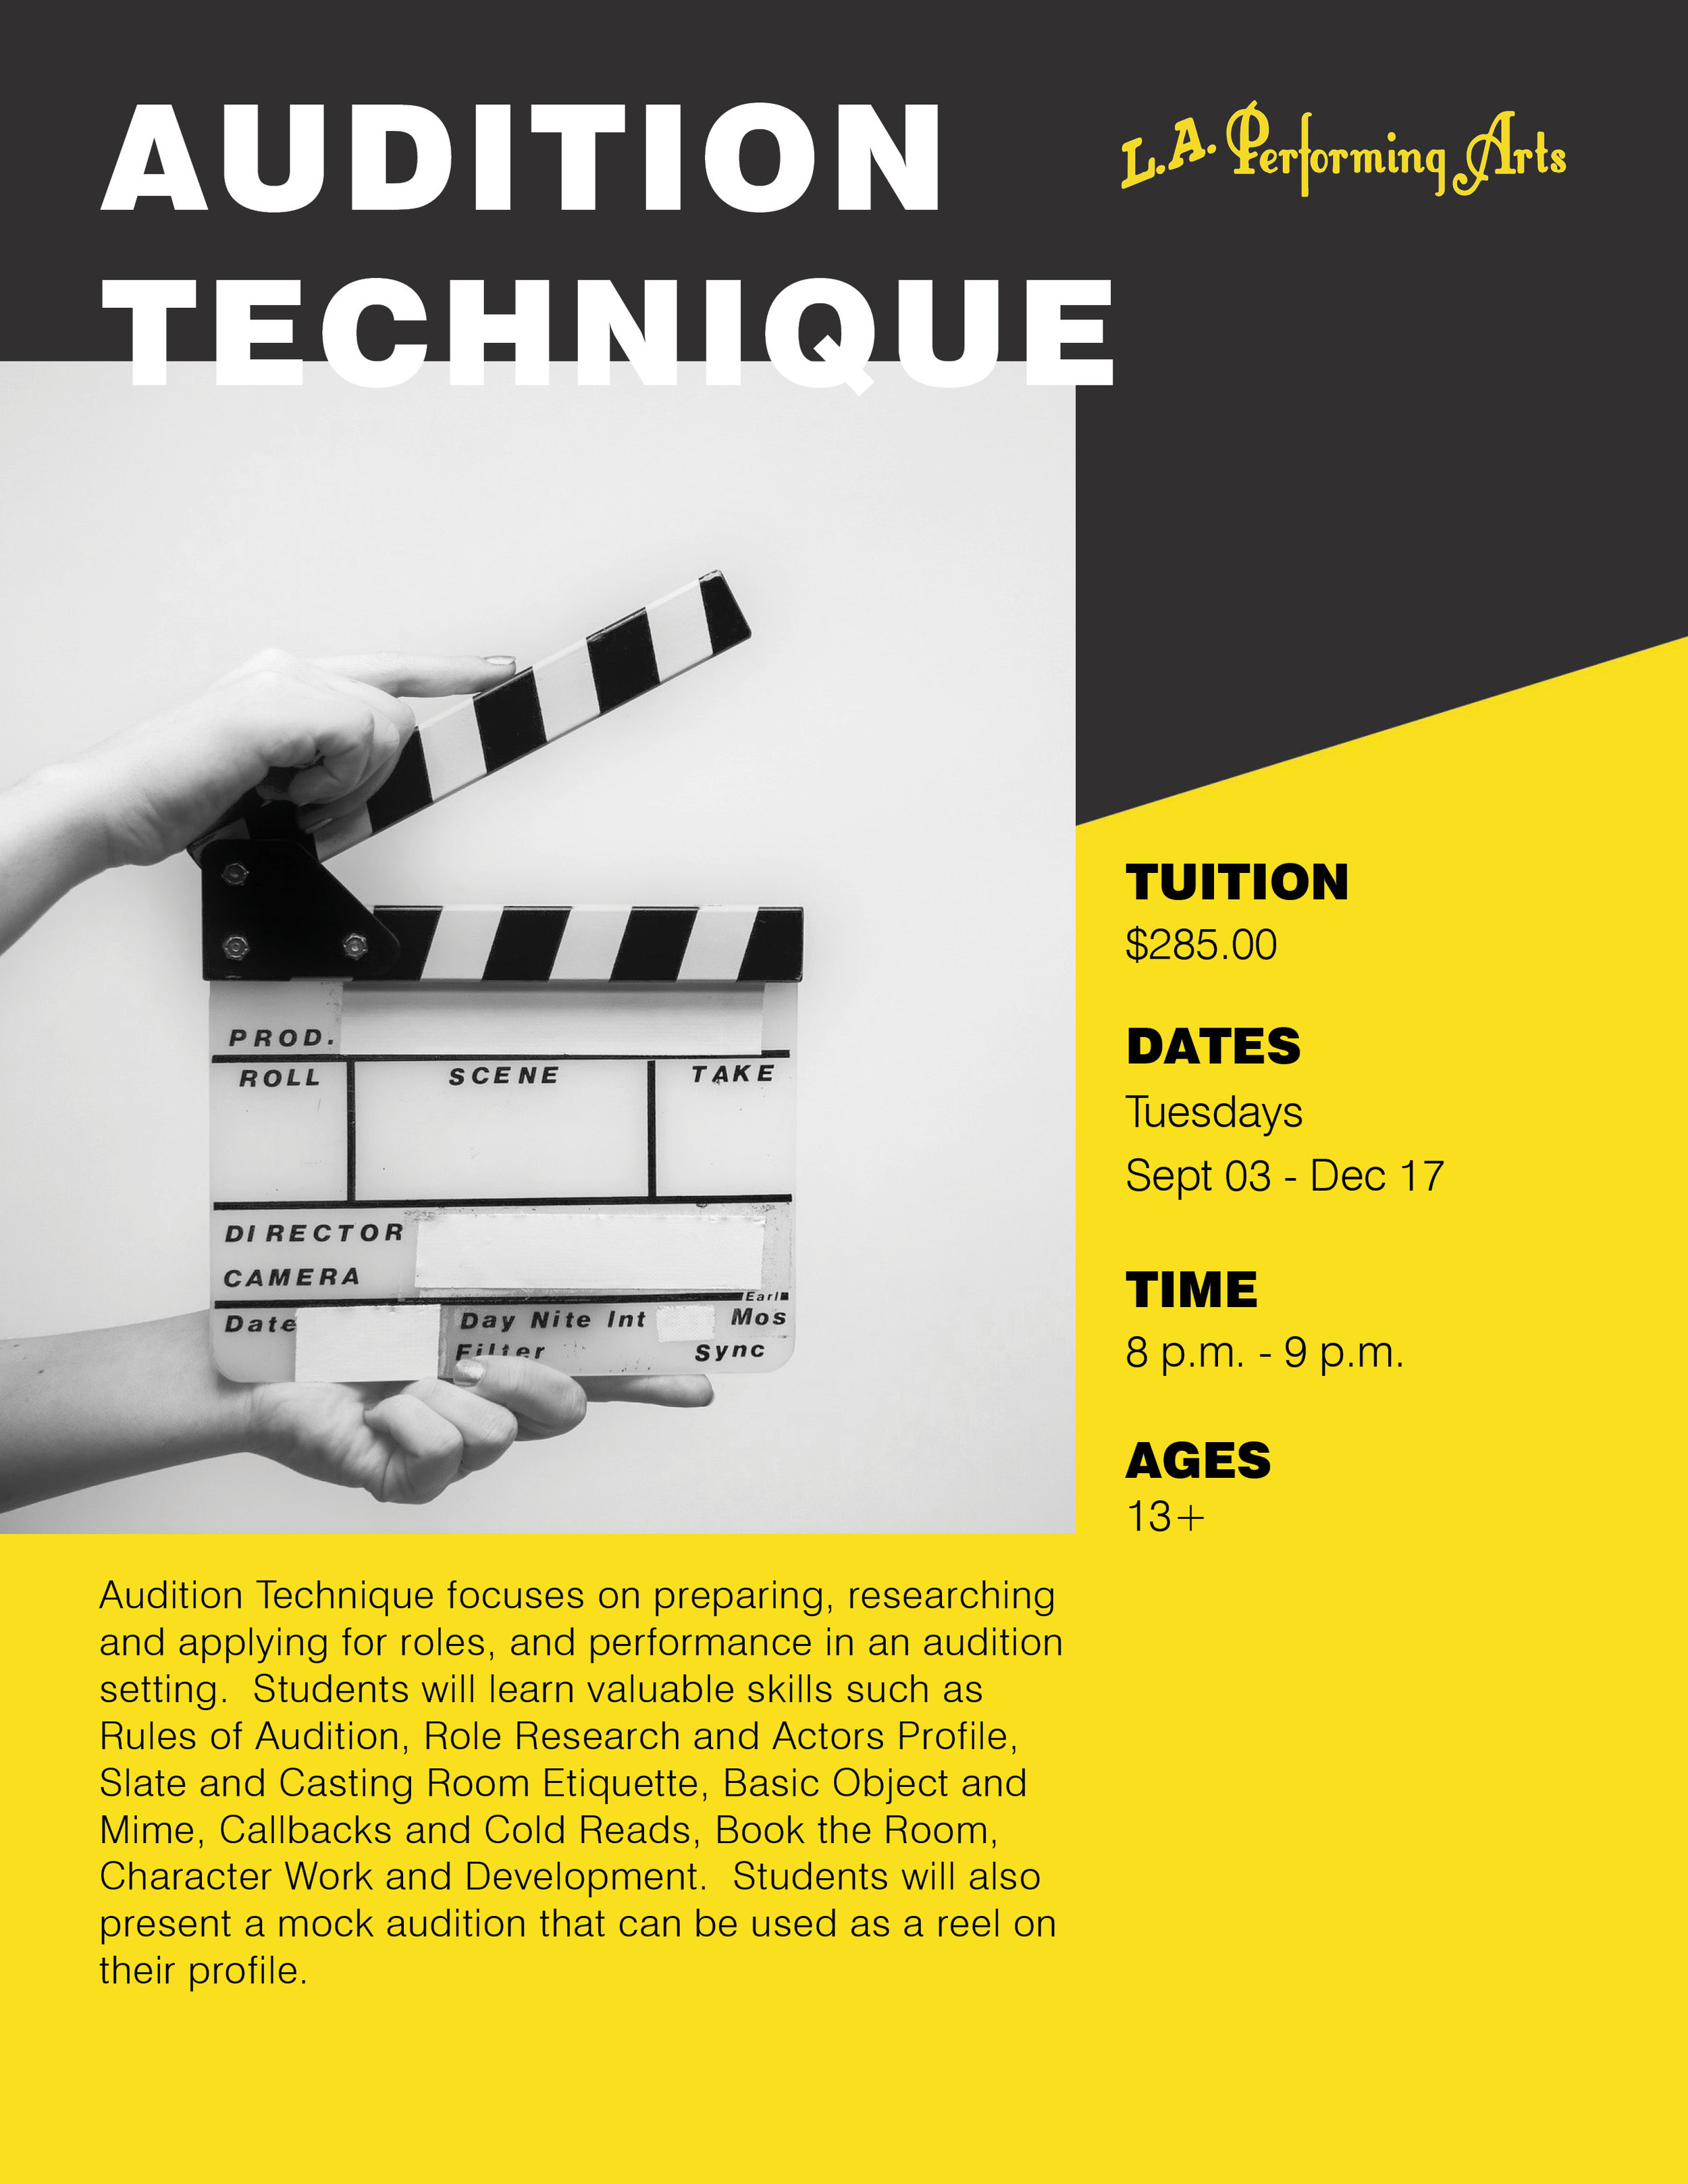 Audition Tech_FA19_poster.jpg